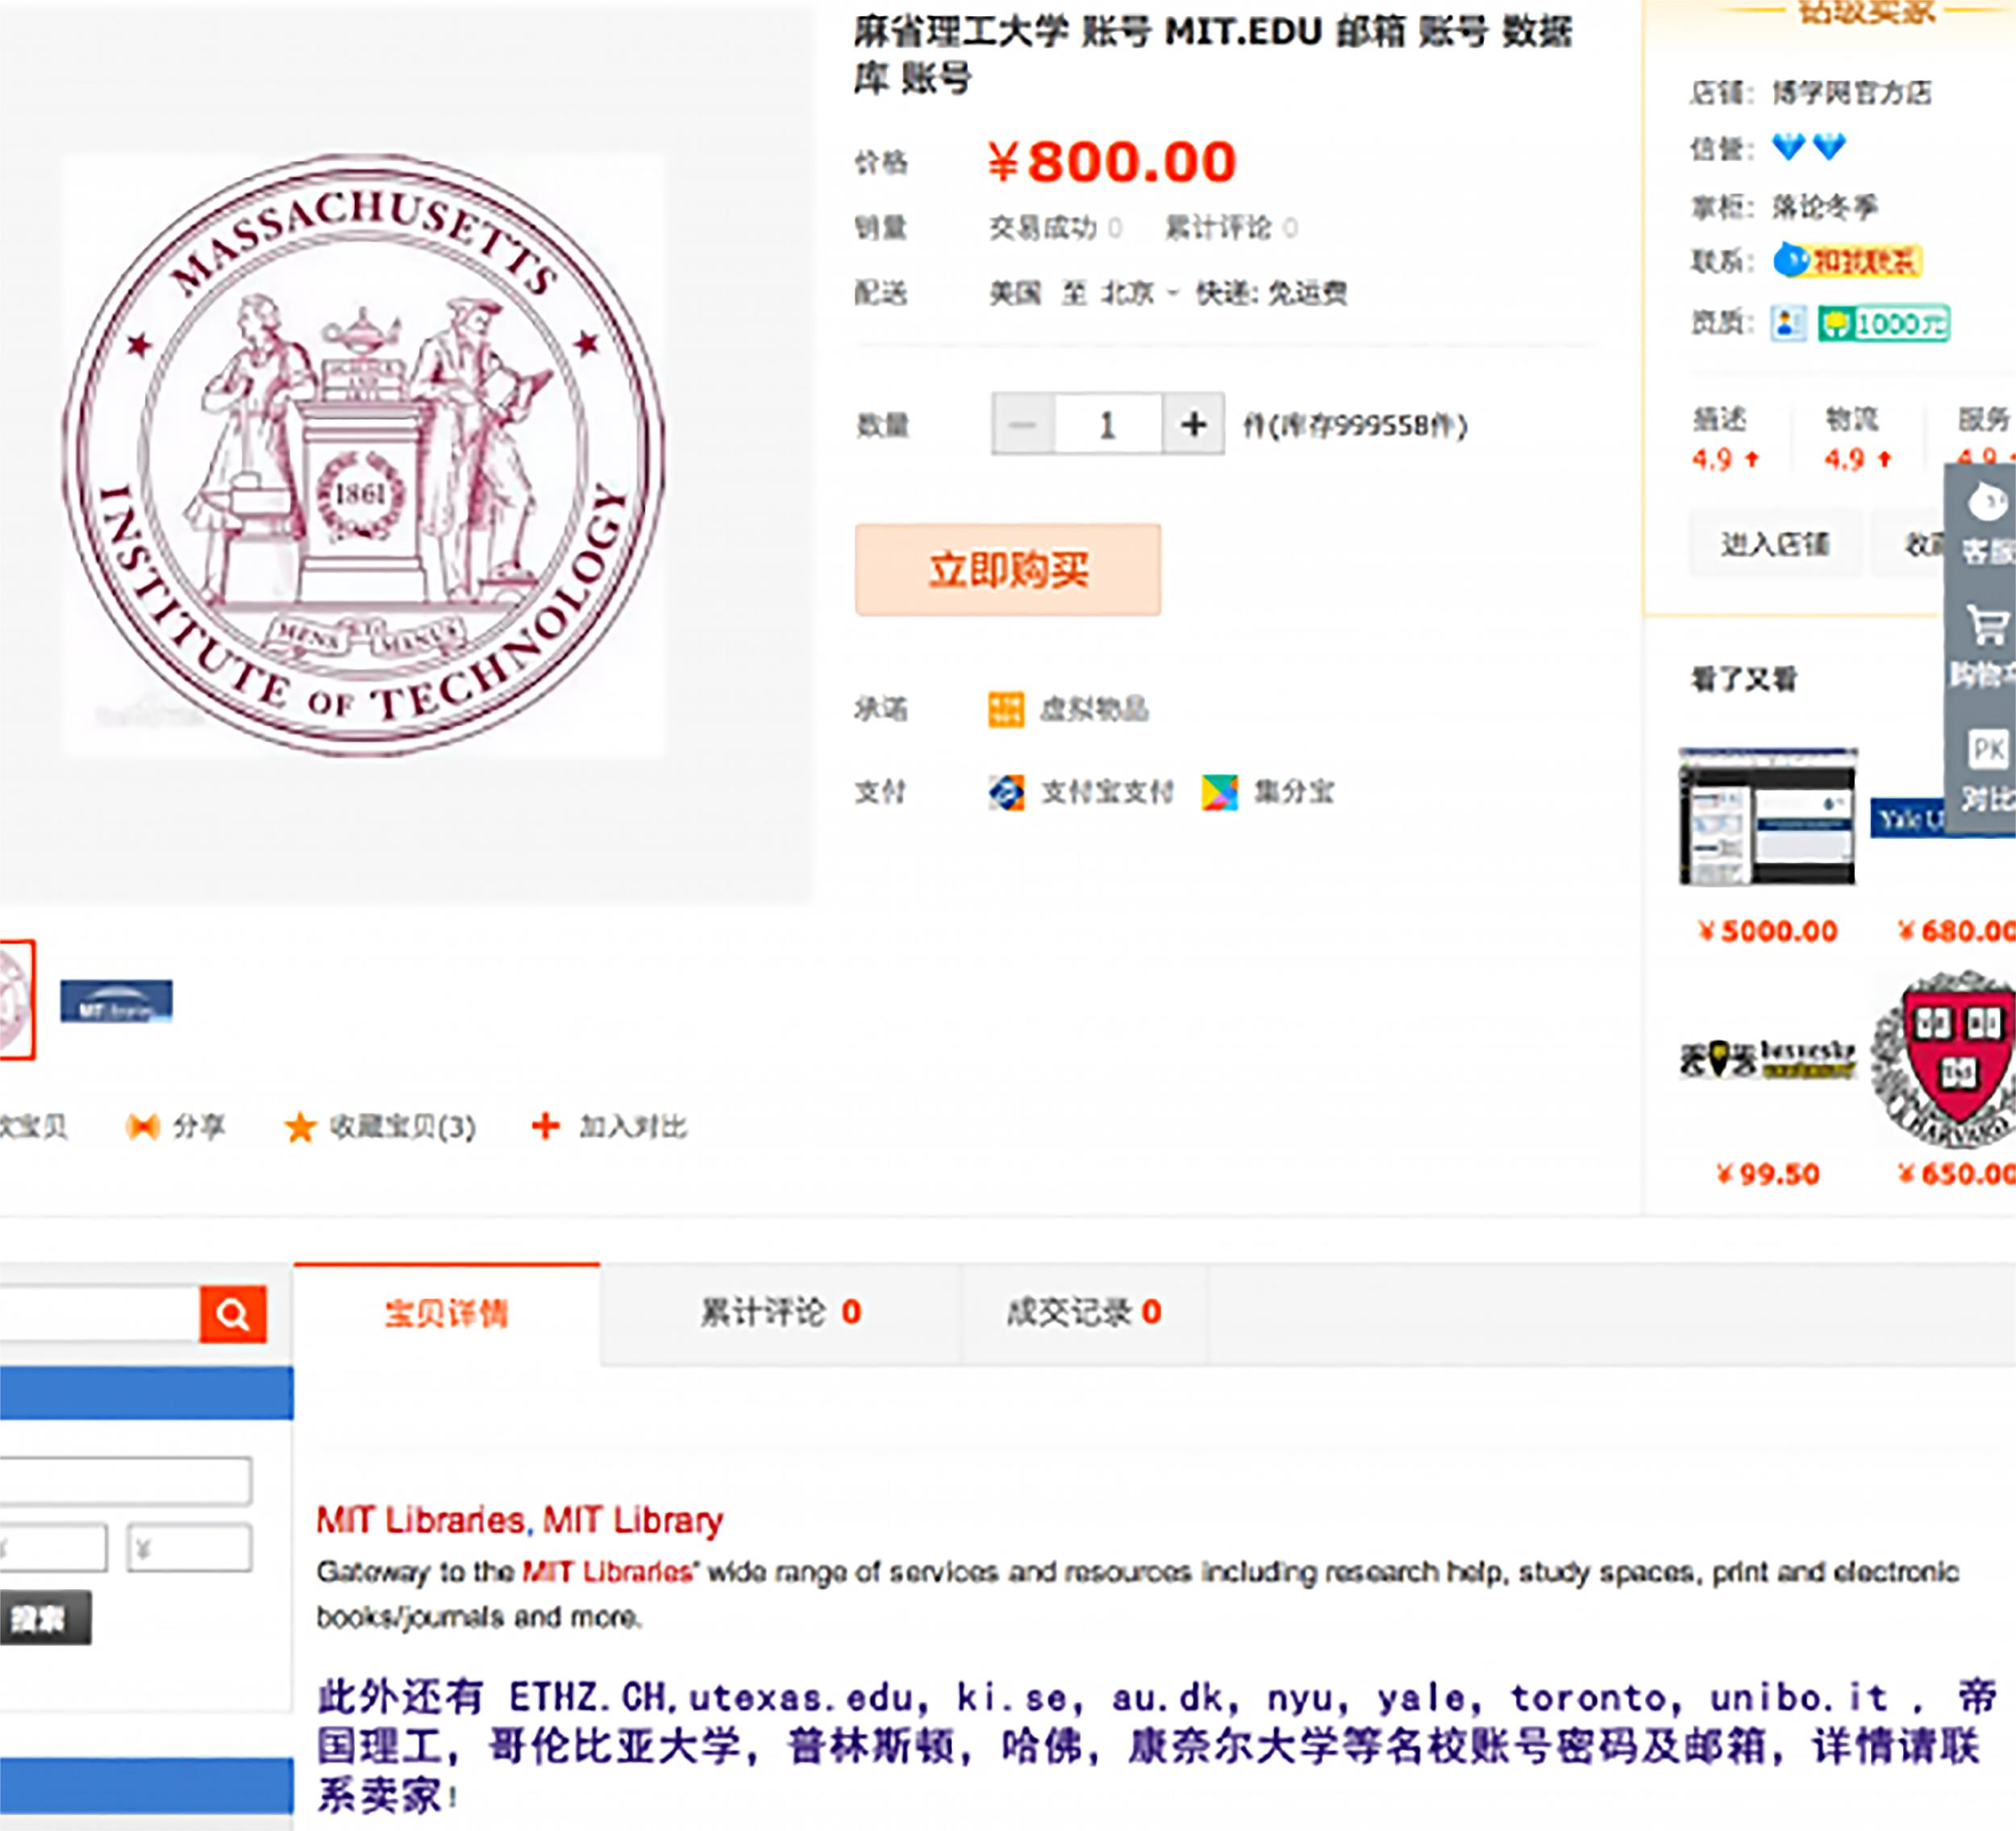 009 History Research Paper For Sale Taobao 500x454 3c6e46375aaa441bb8137c844c3ee66b Phenomenal Full